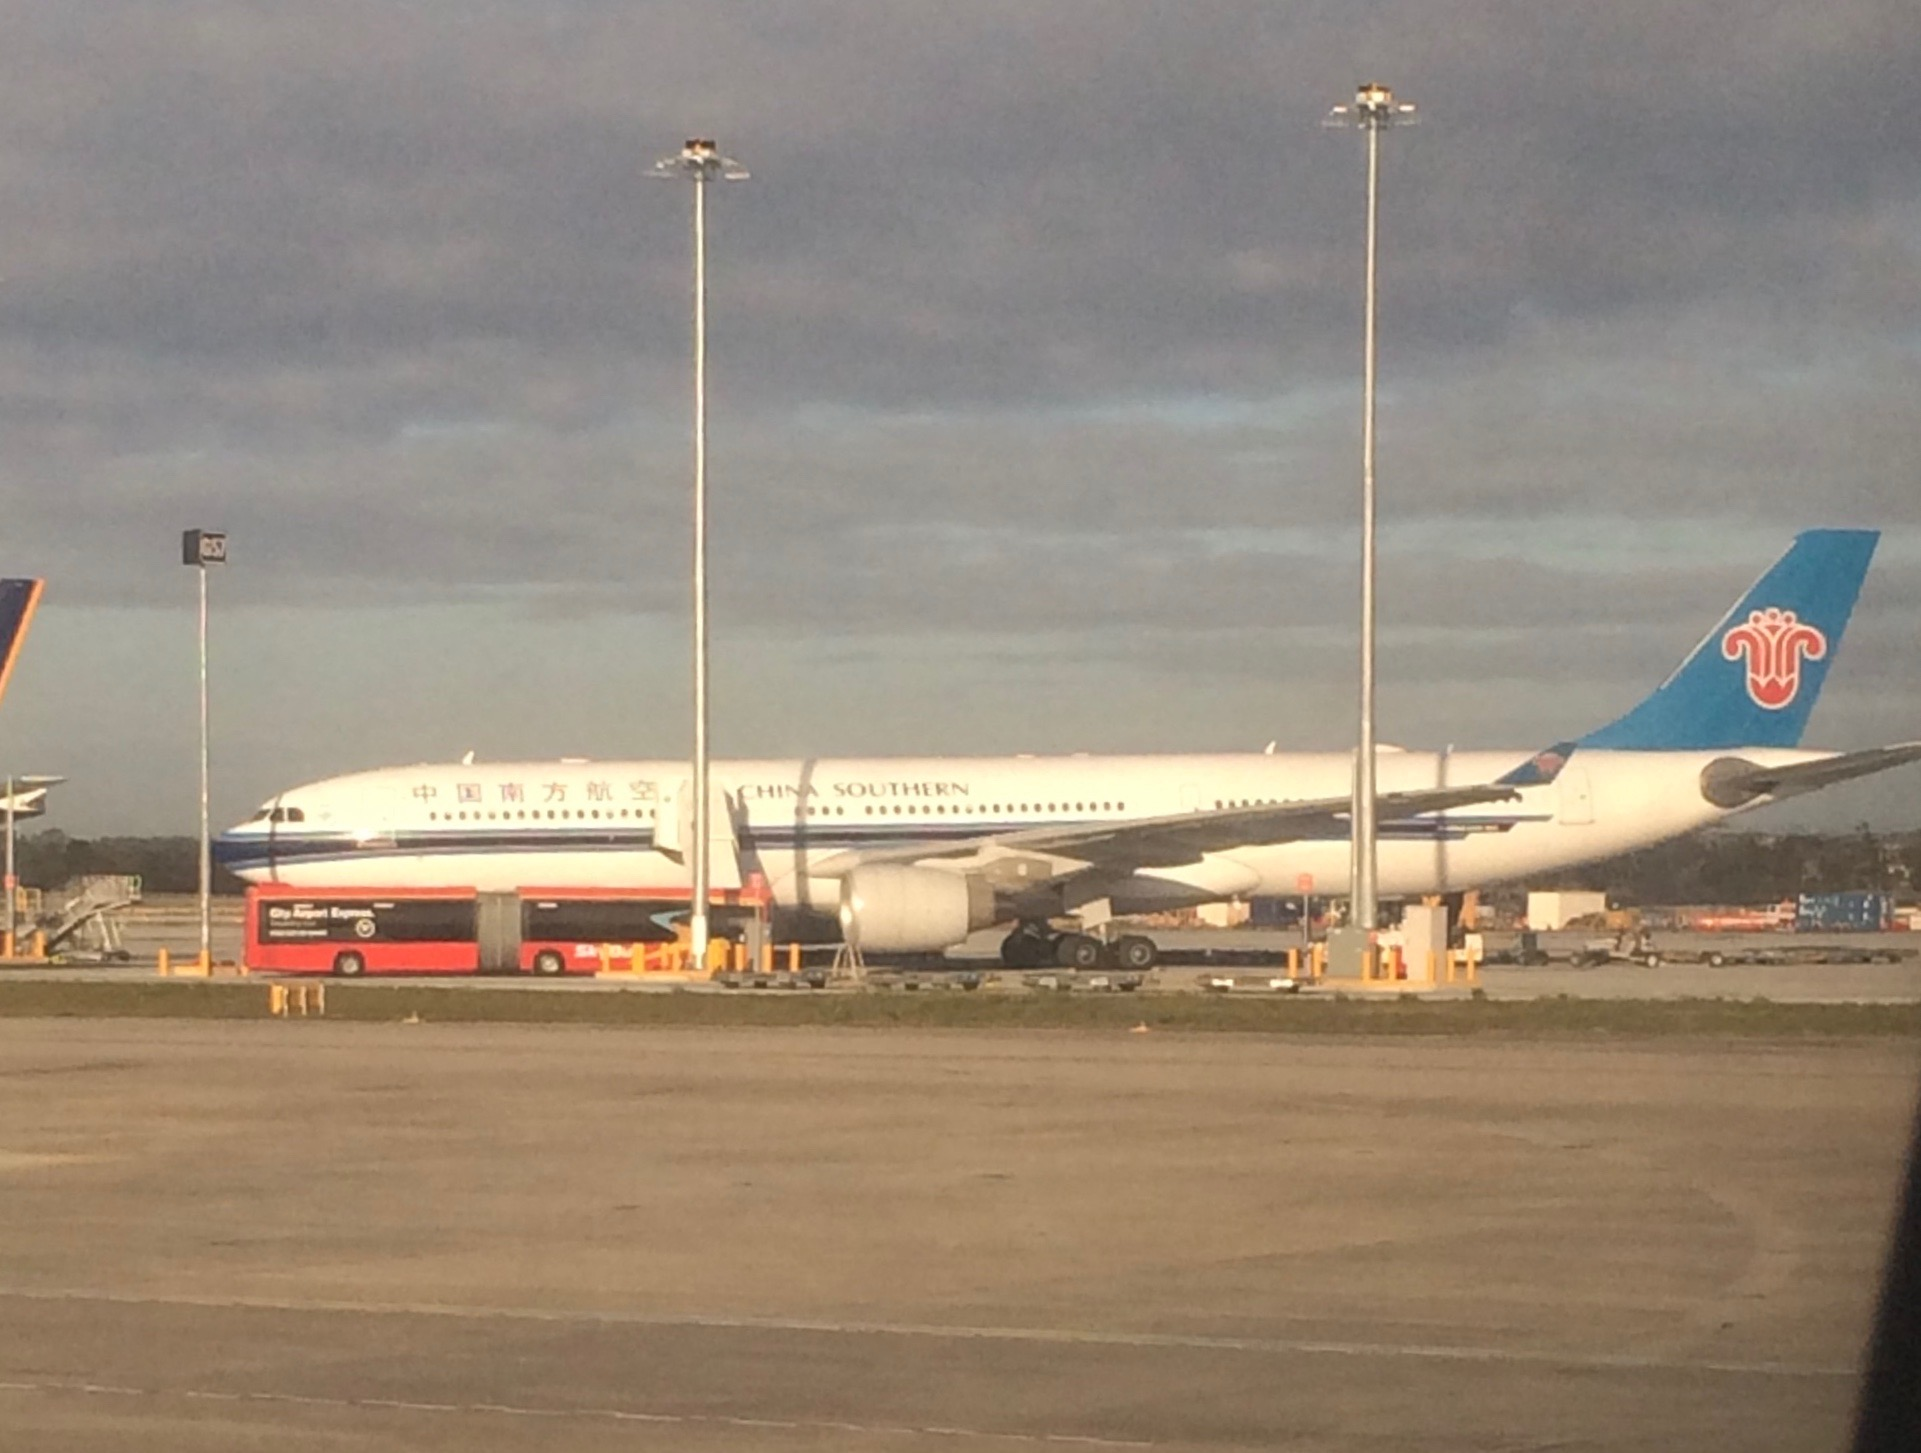 A China Southern Airlines A330-300